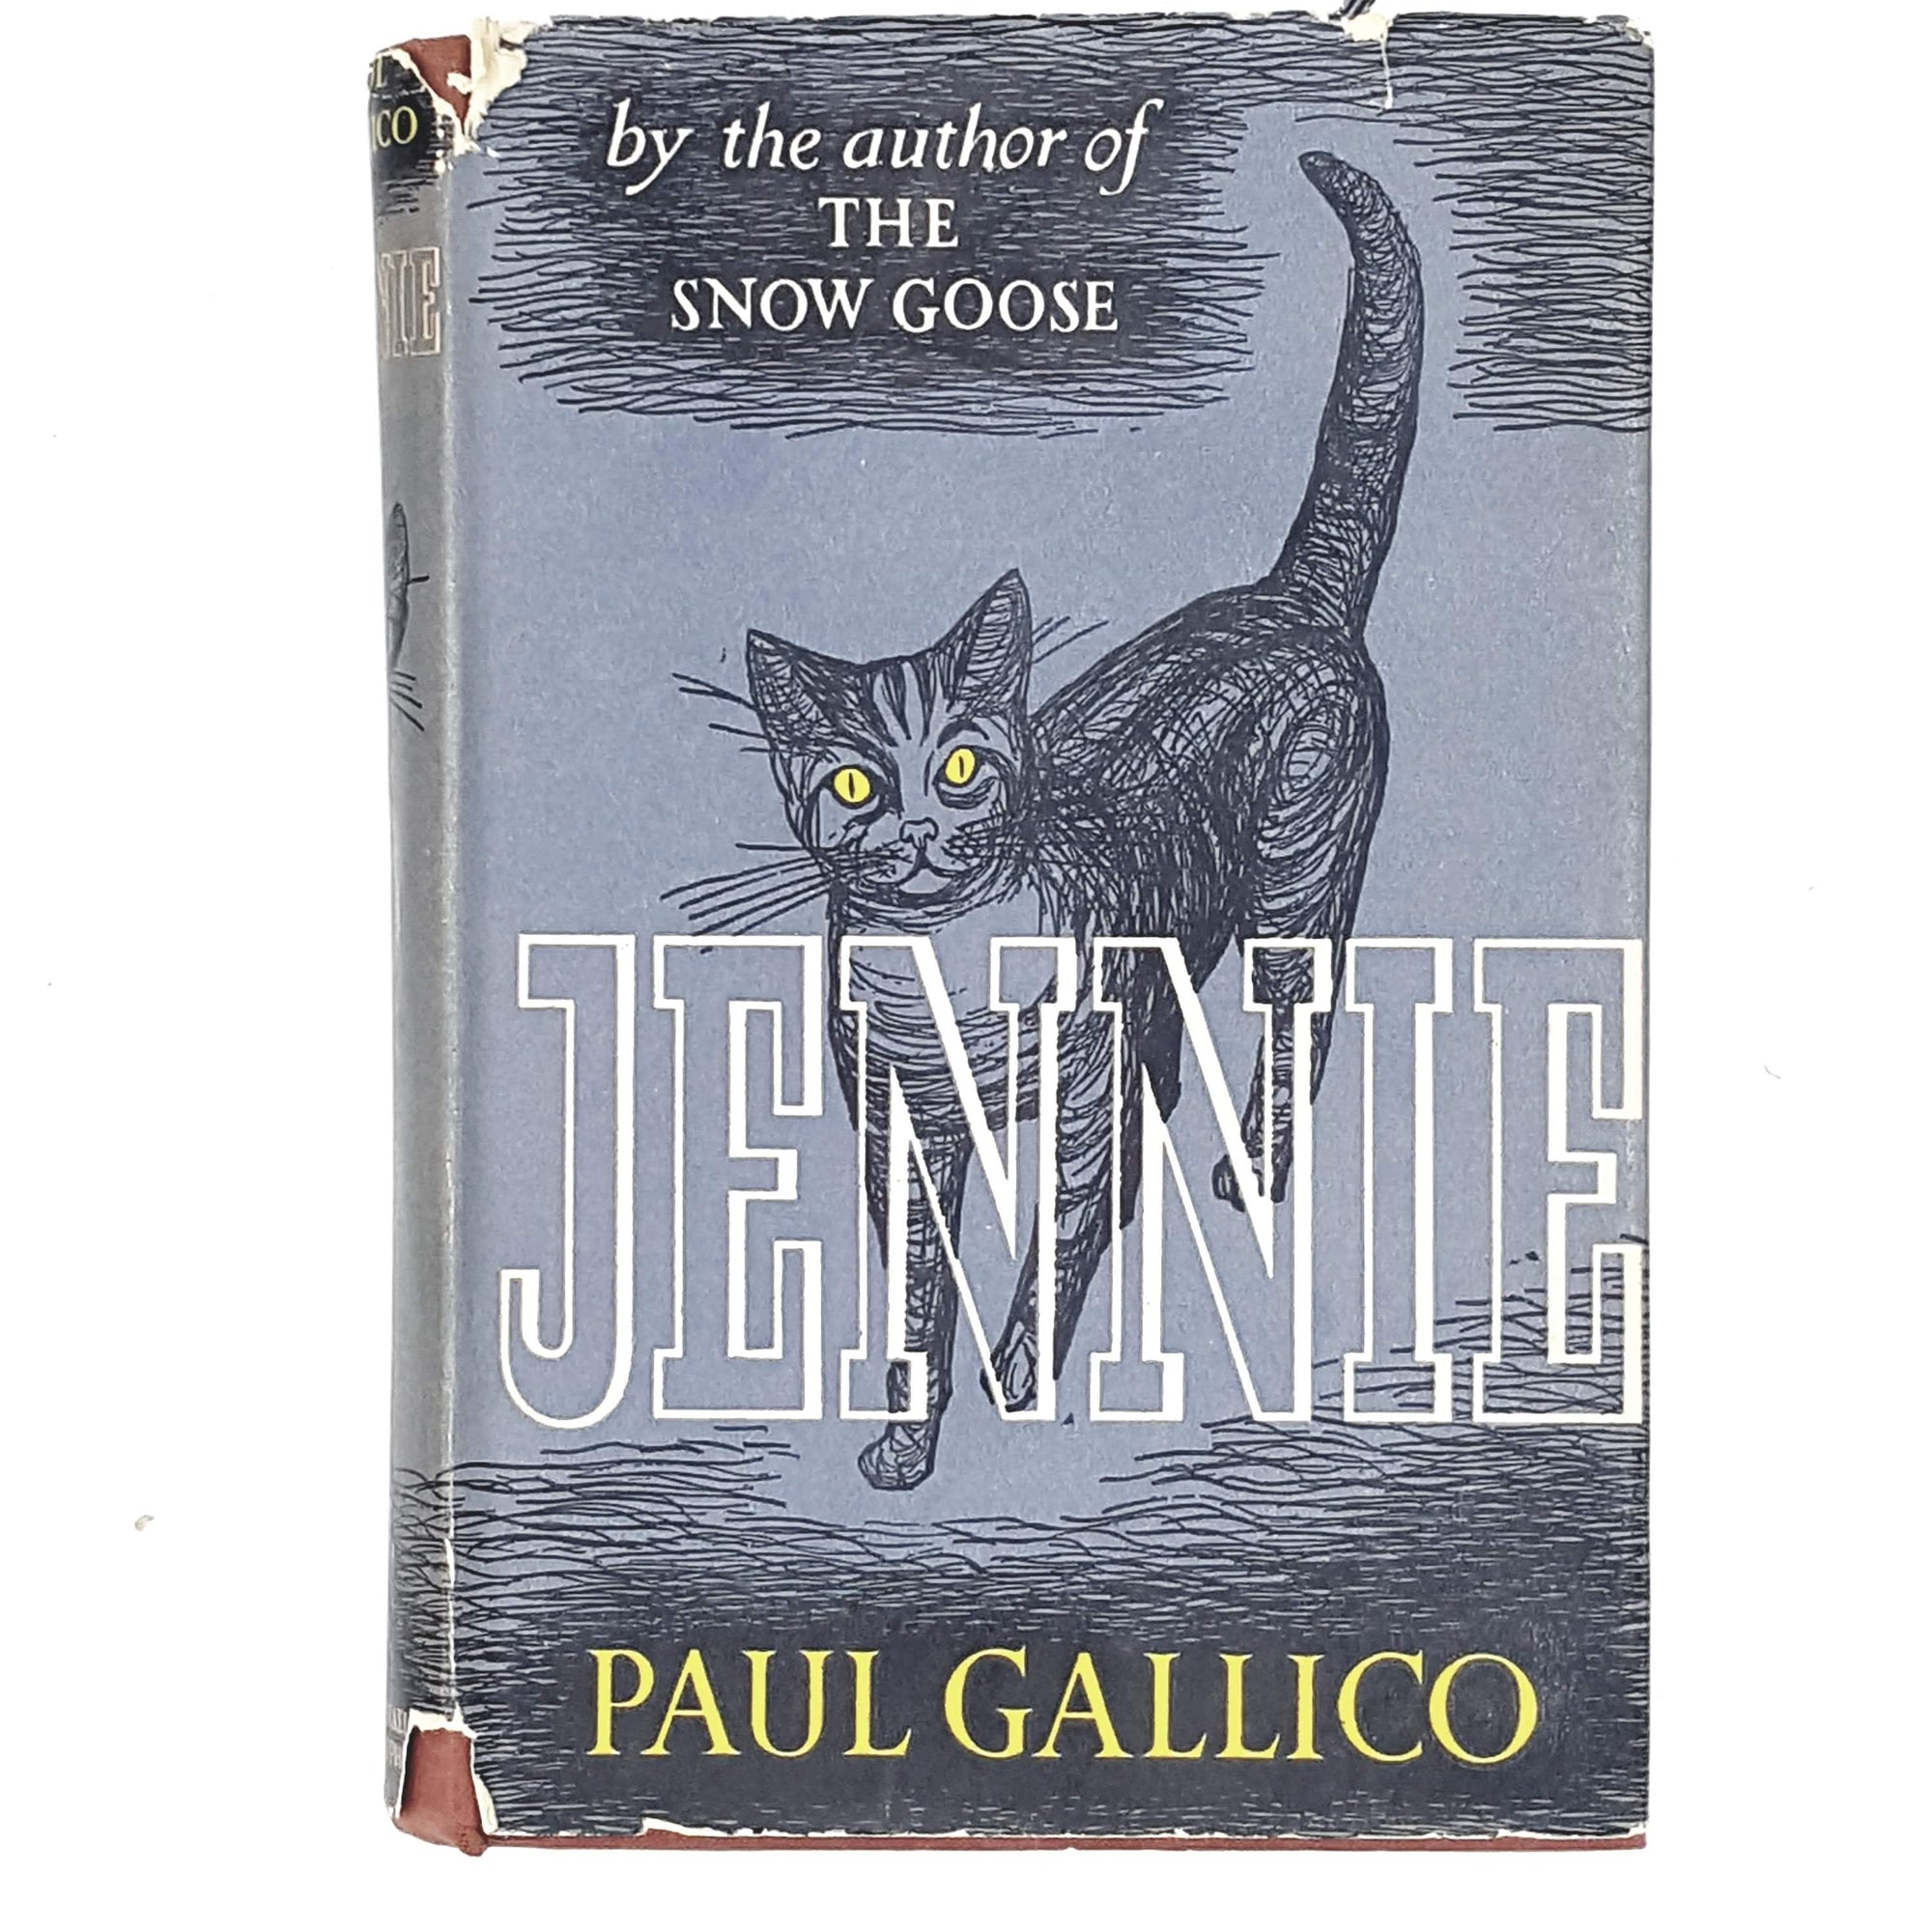 grey-paul-gallico-jennie-vintage-book-country-house-library